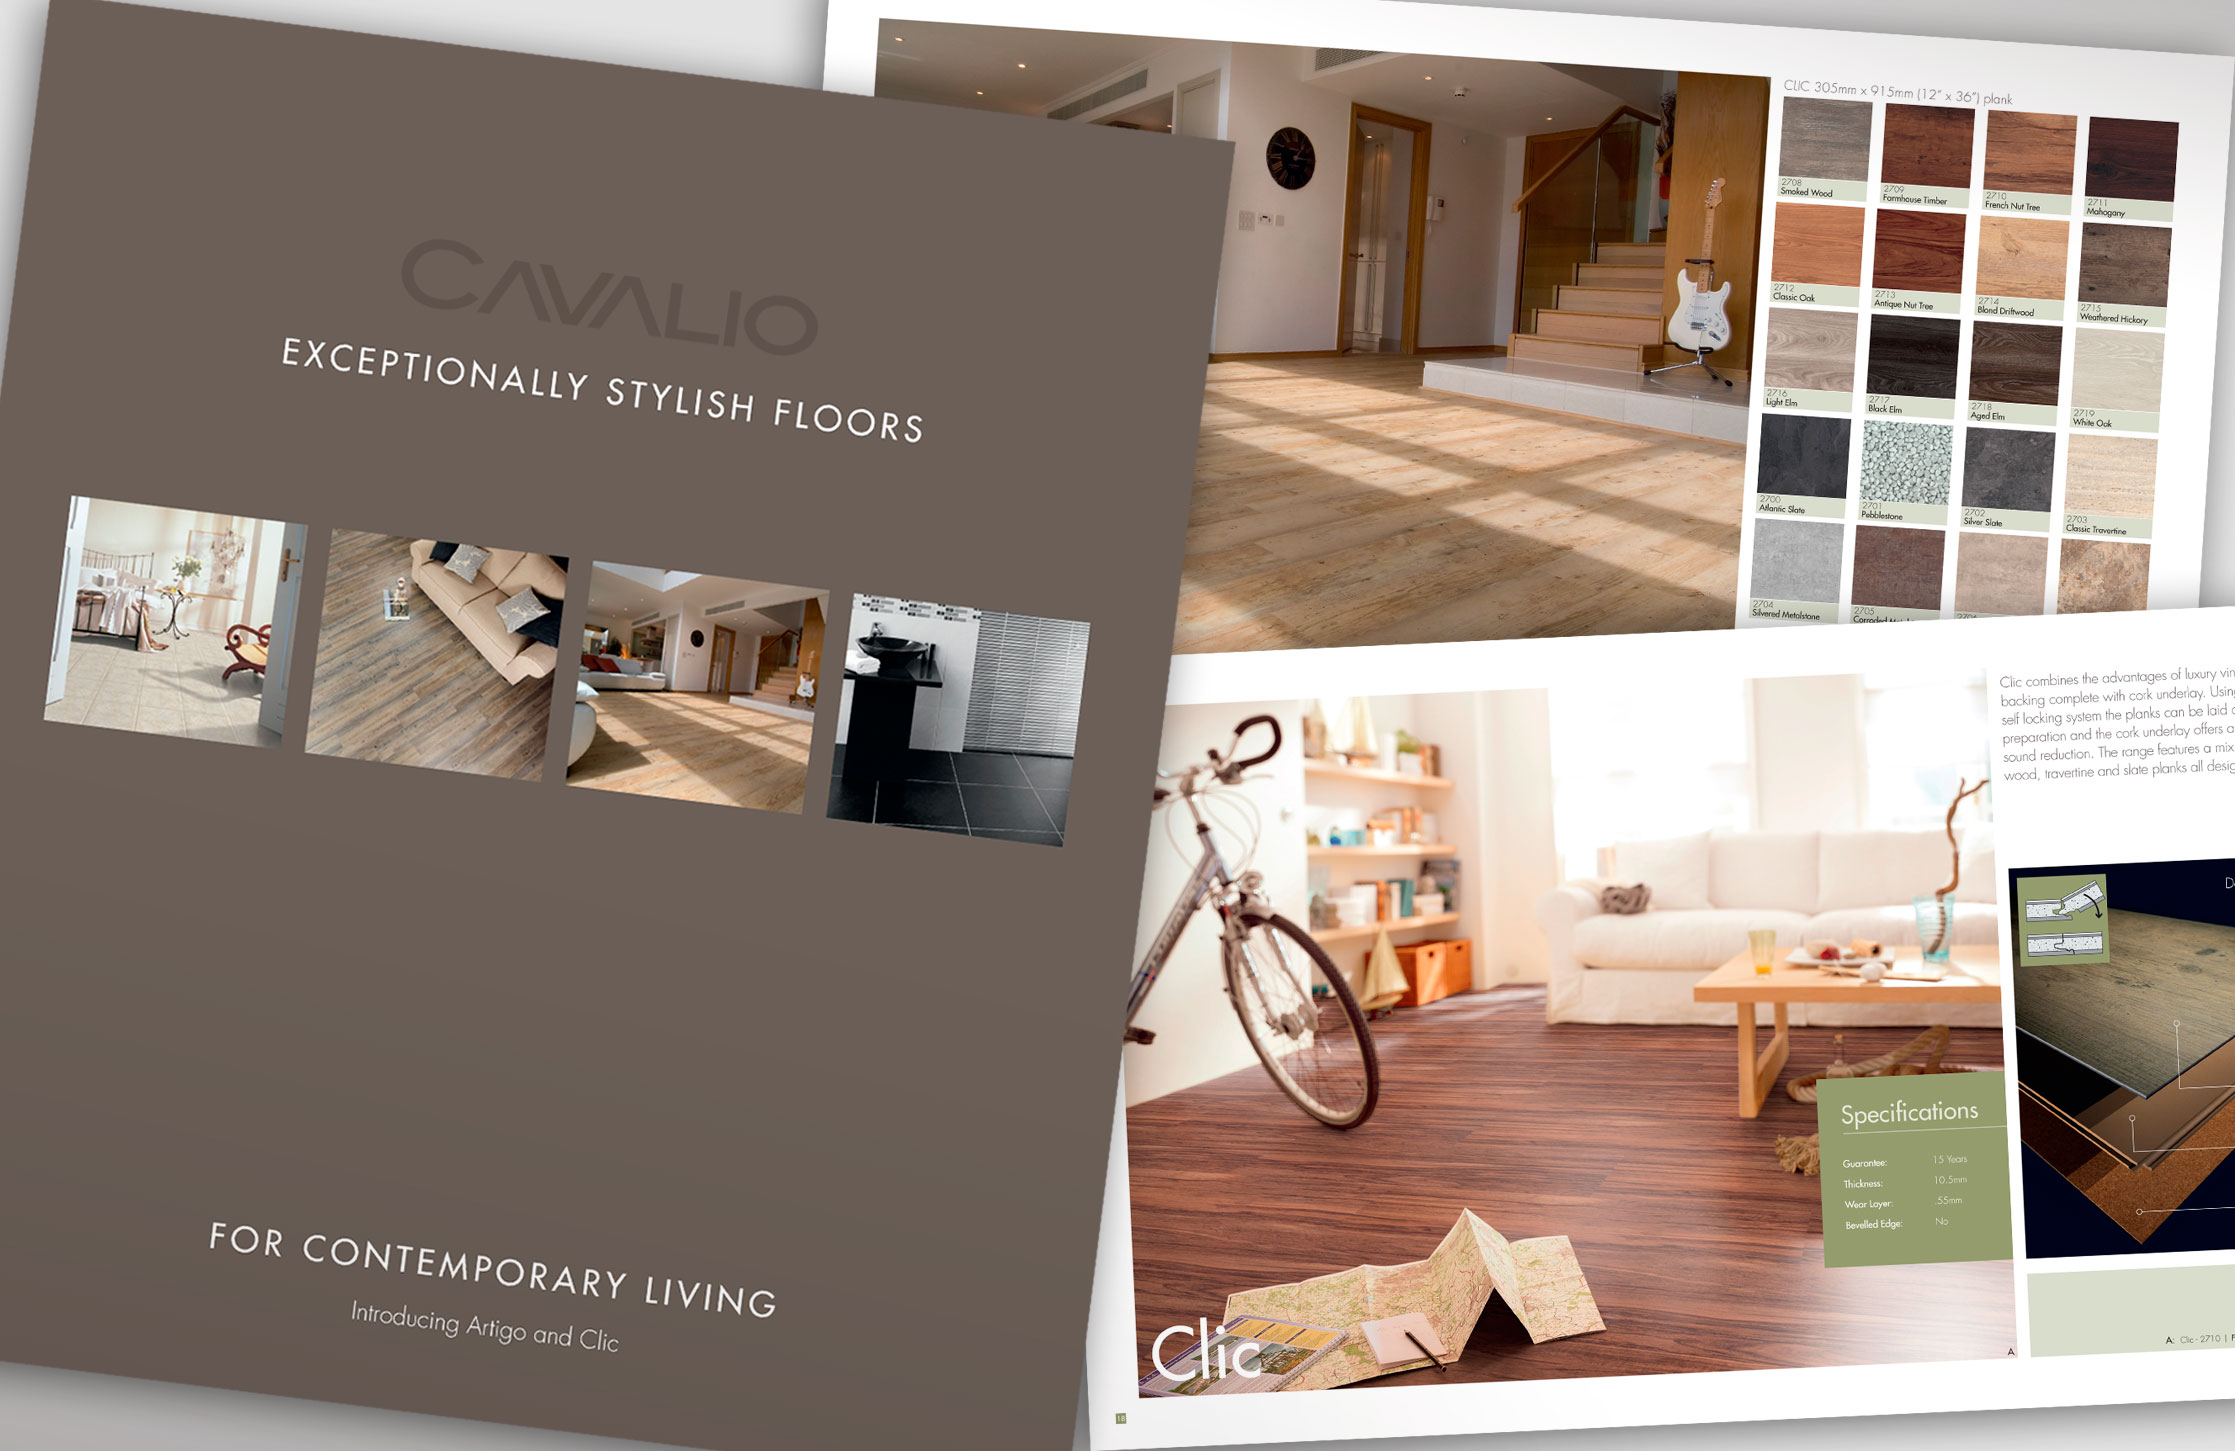 Cavalio flooring catalogue